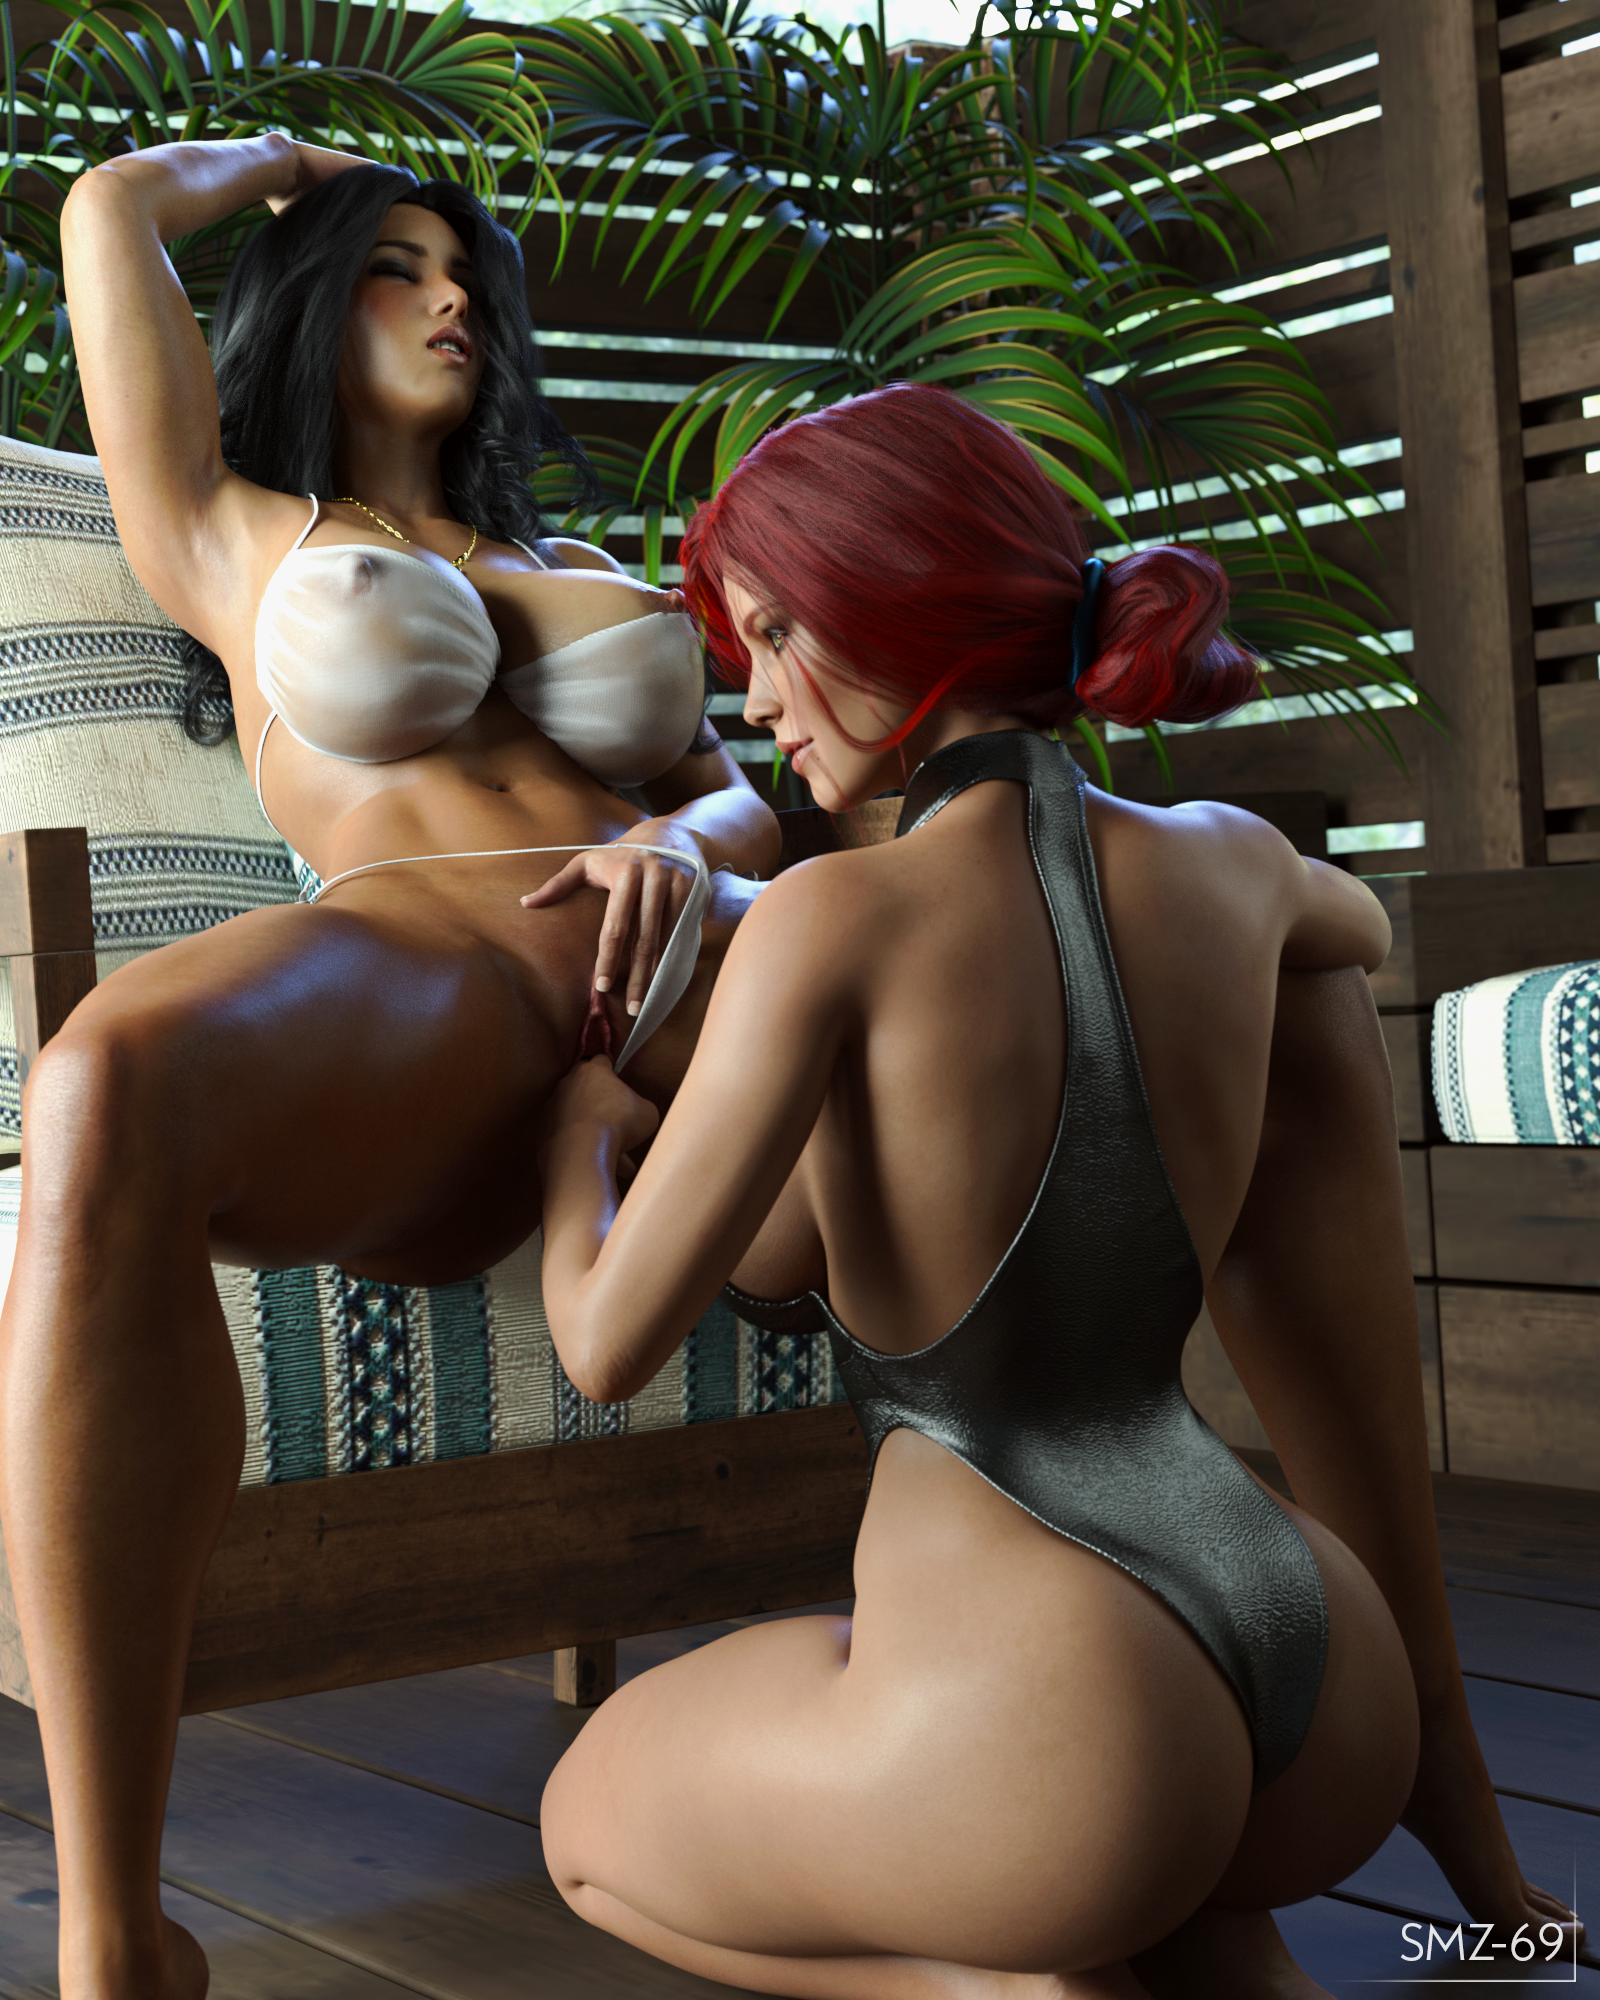 Brecca & Triss - You like to watch?